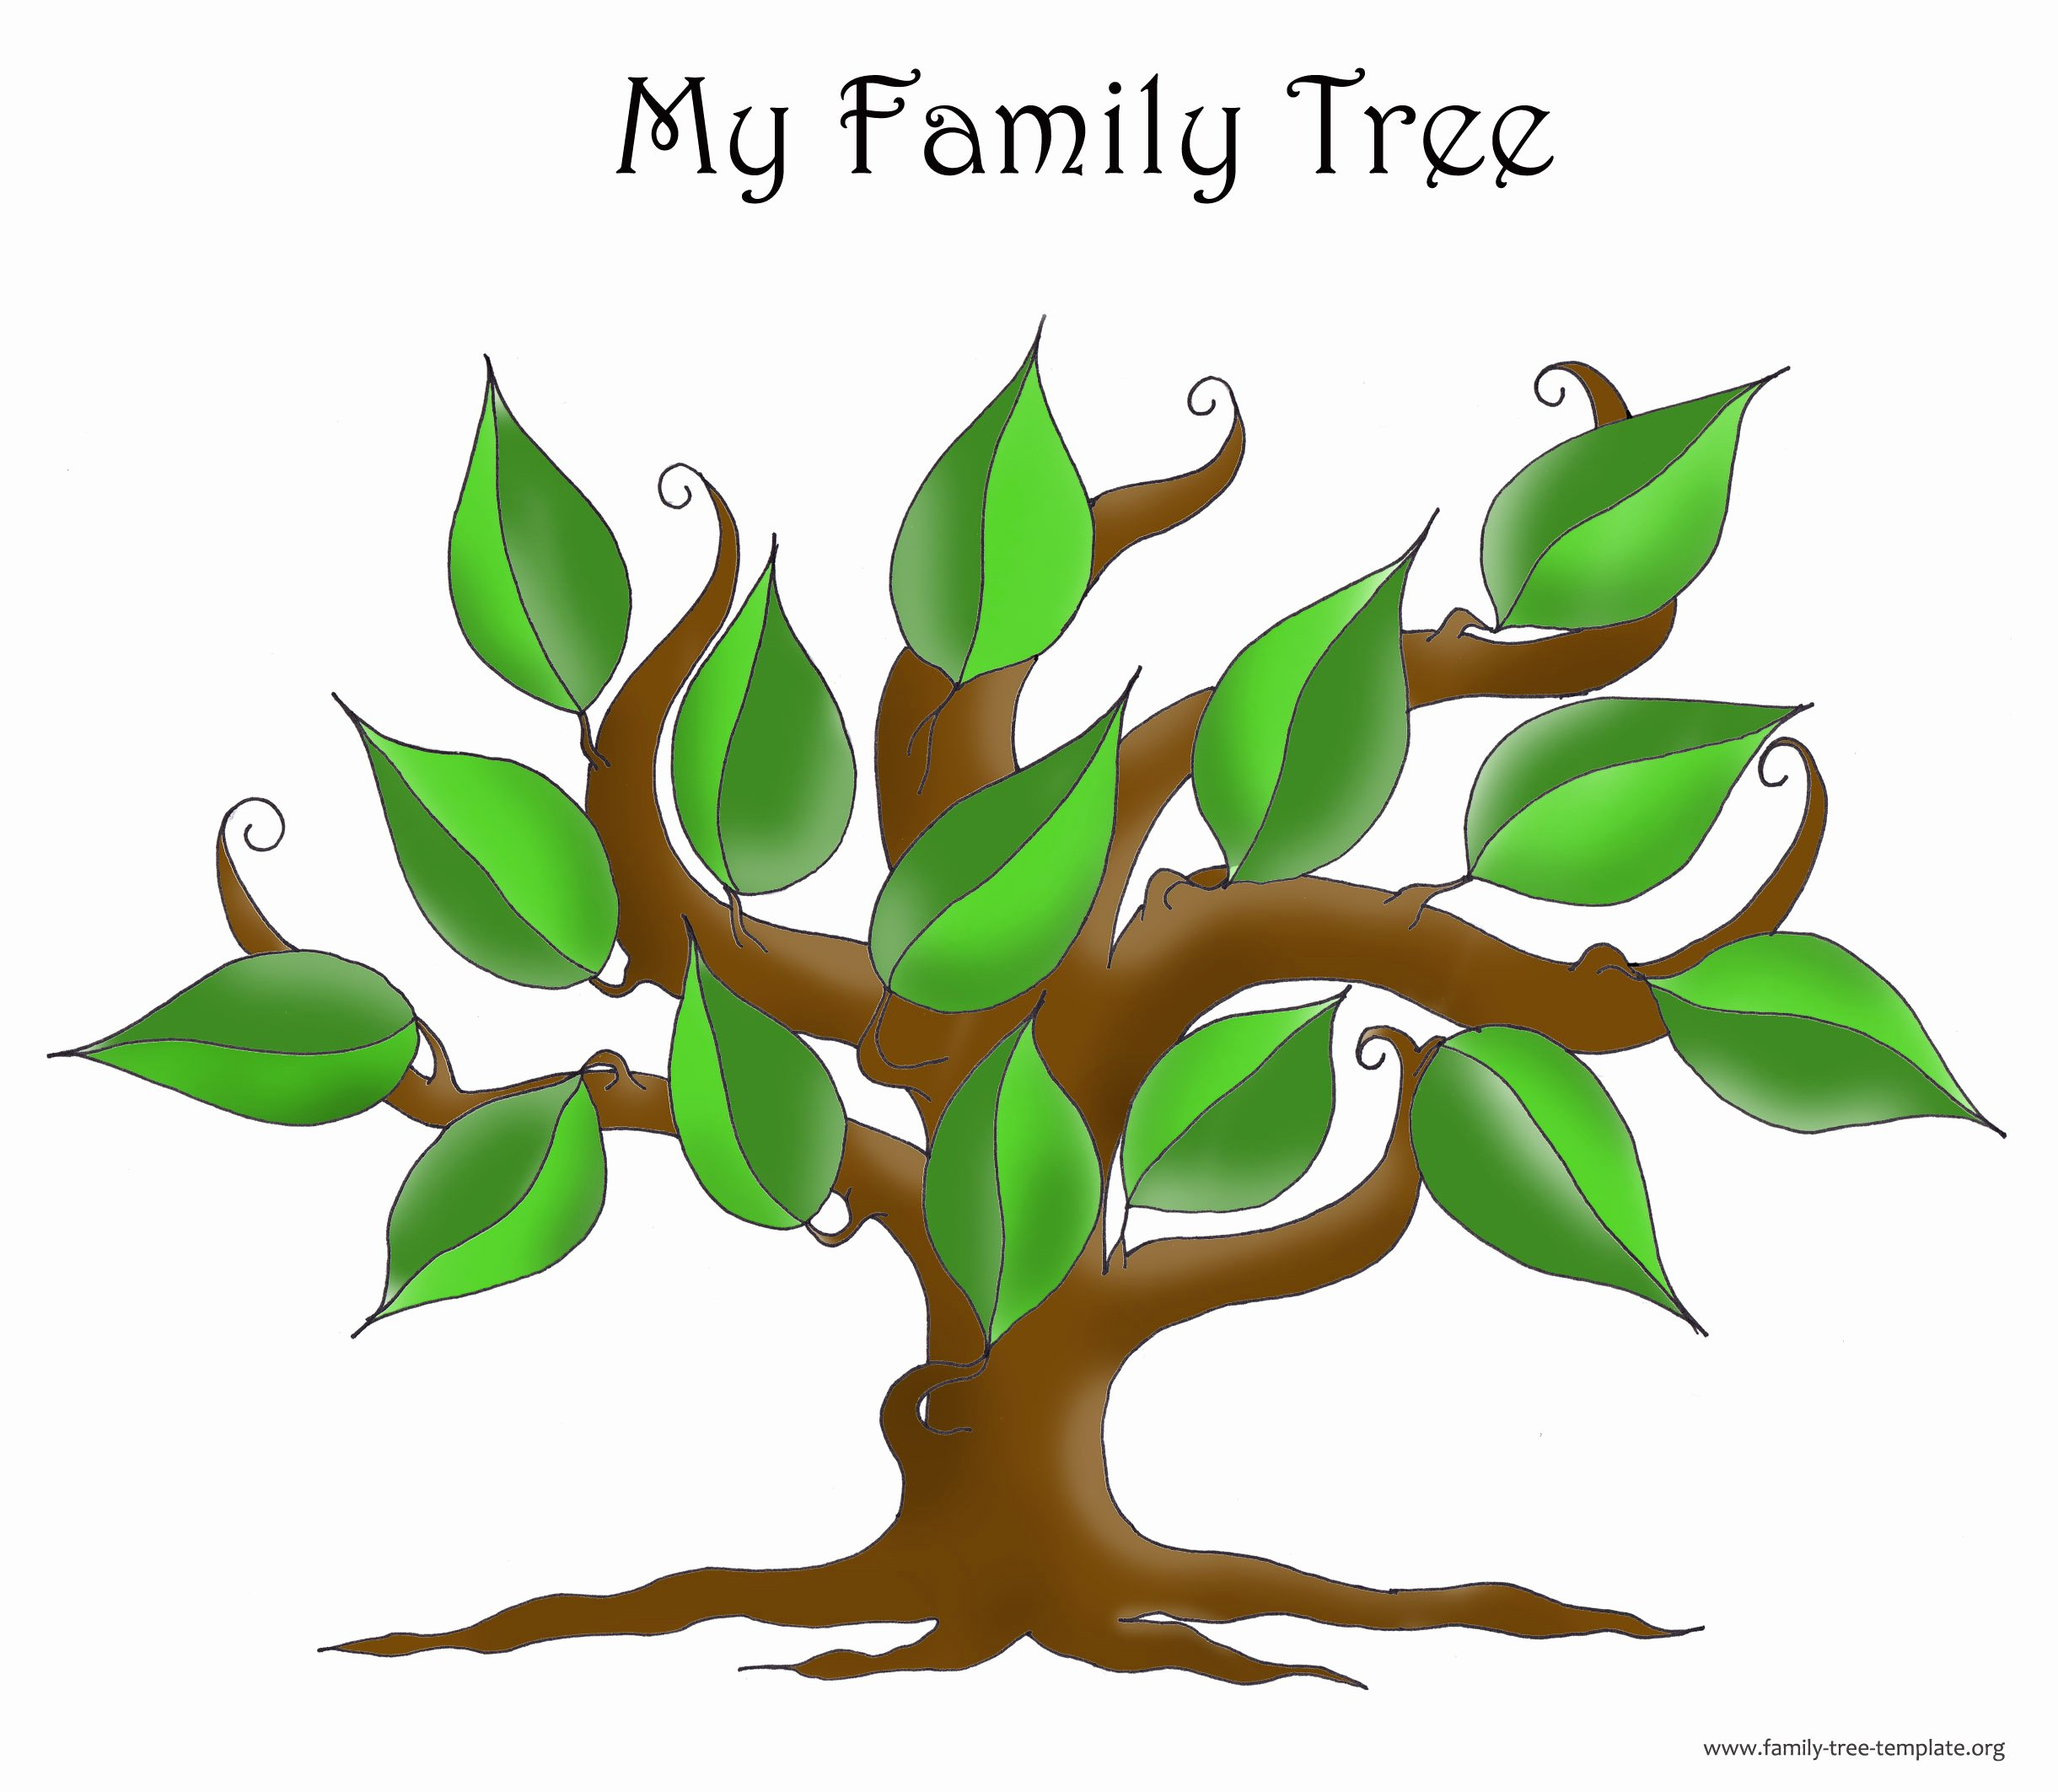 Blank Family Tree Template Elegant Family Tree Template Resources